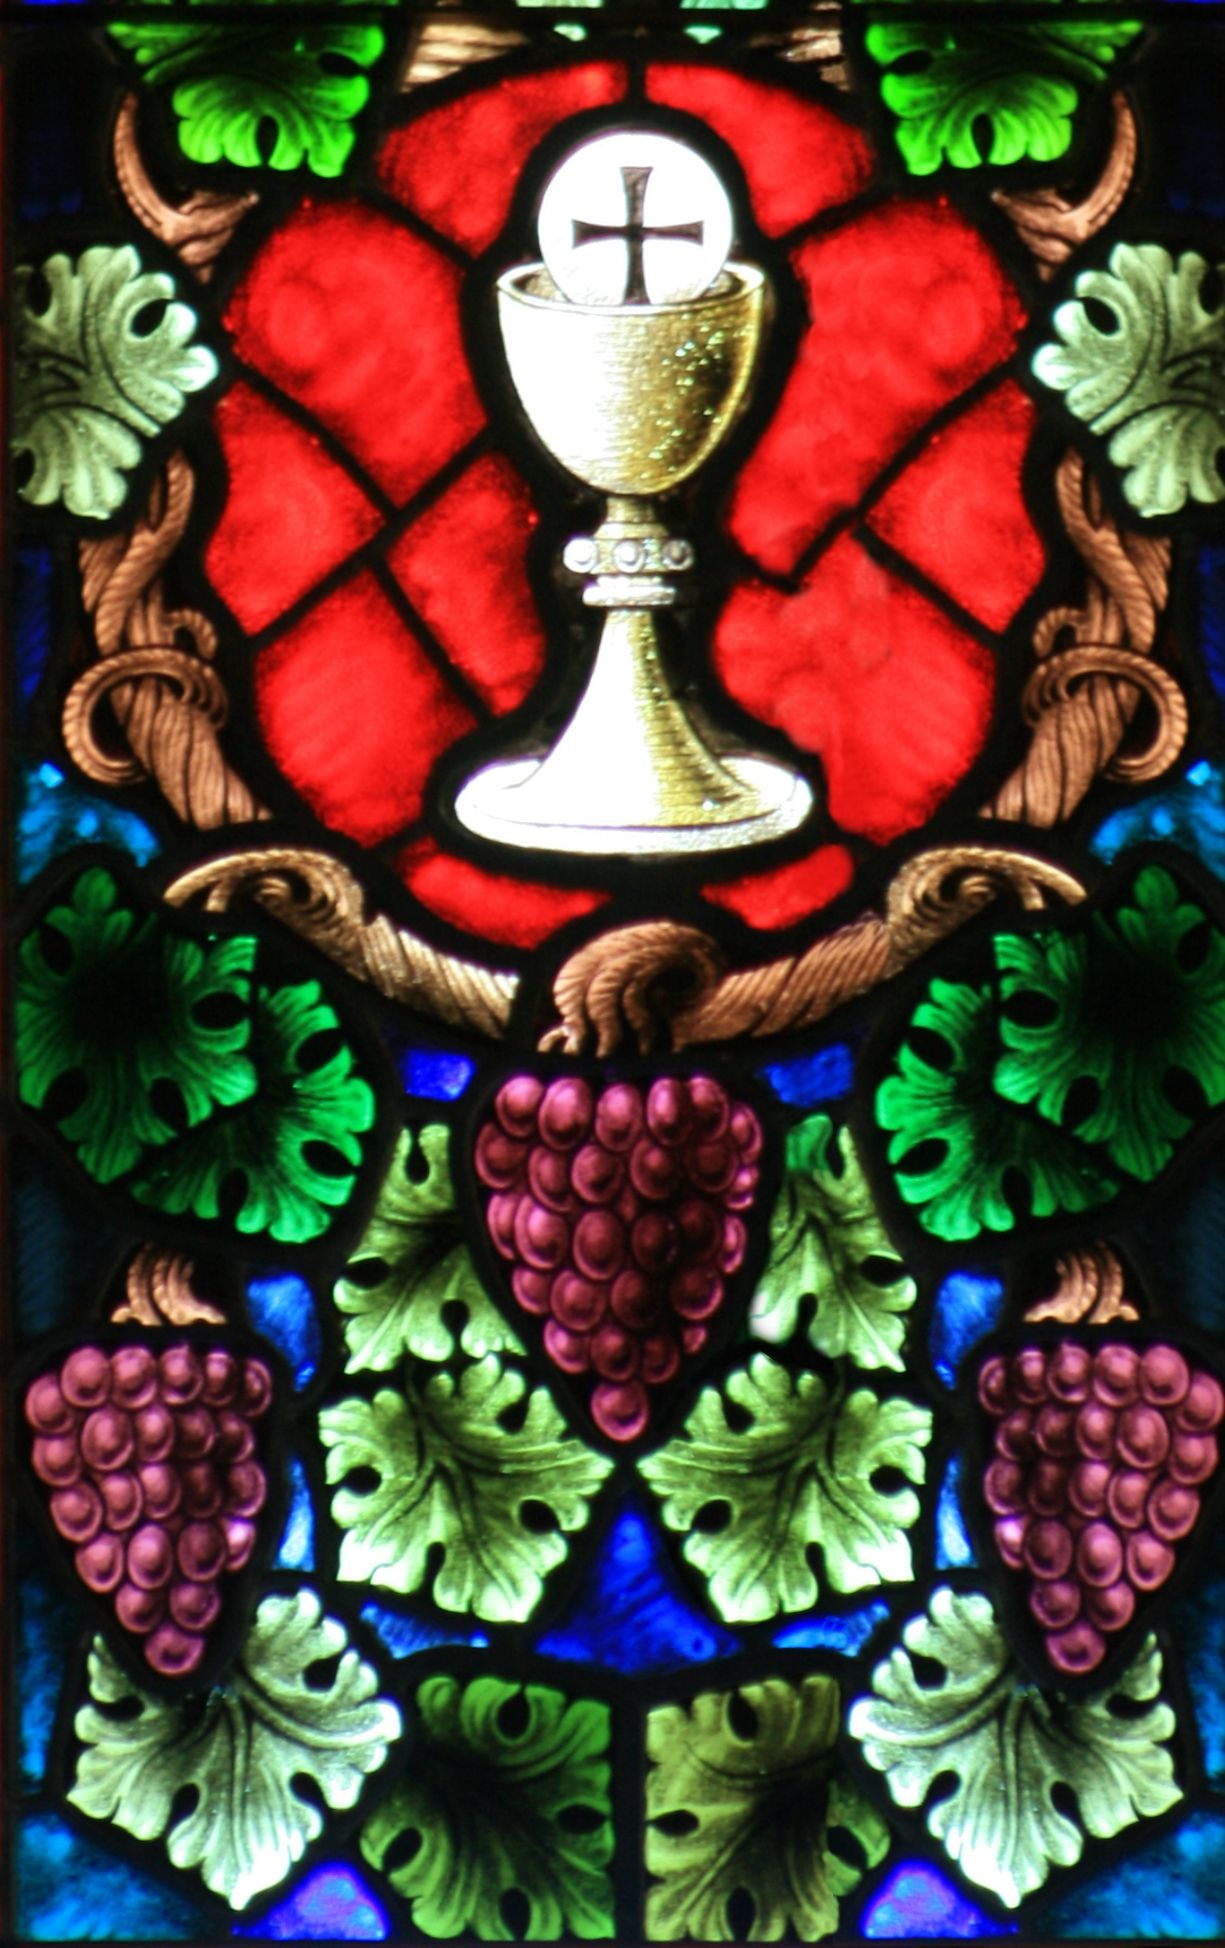 Holy Grail Chalice And Trinity Grapes Eucharistic Adoration Chalice Art Inspiration